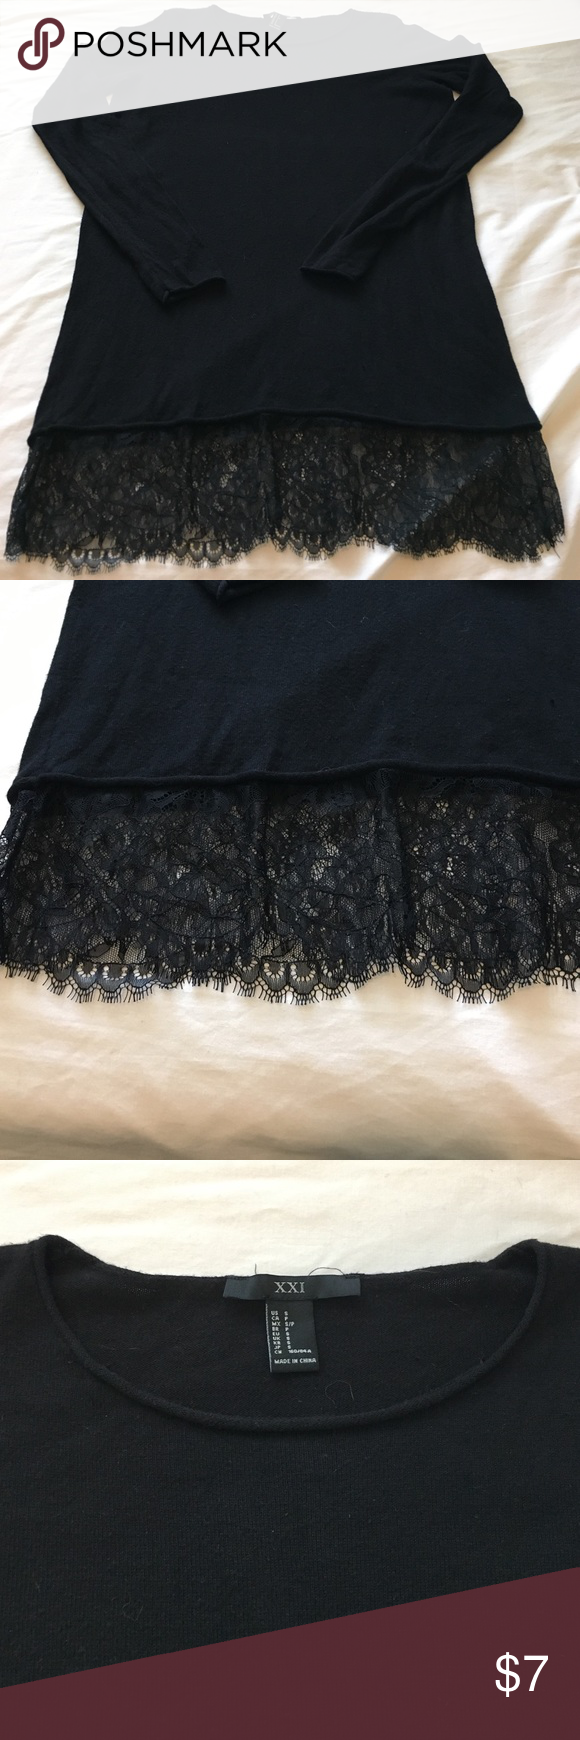 Forever 21 Long Sweater w/Lace Edge Lace detailed Sweater- very lightweight thin style sweater. Would look great with Lularoe leggings since it's on the long side!! Measurements will post soon!! Lace on one side looks like a piece was either cut off or during production it was sliced. See picture. Not noticeable when wearing & not coming apart. 100% polyester. Preloved. From nonsmoking home. Forever 21 Sweaters Crew & Scoop Necks